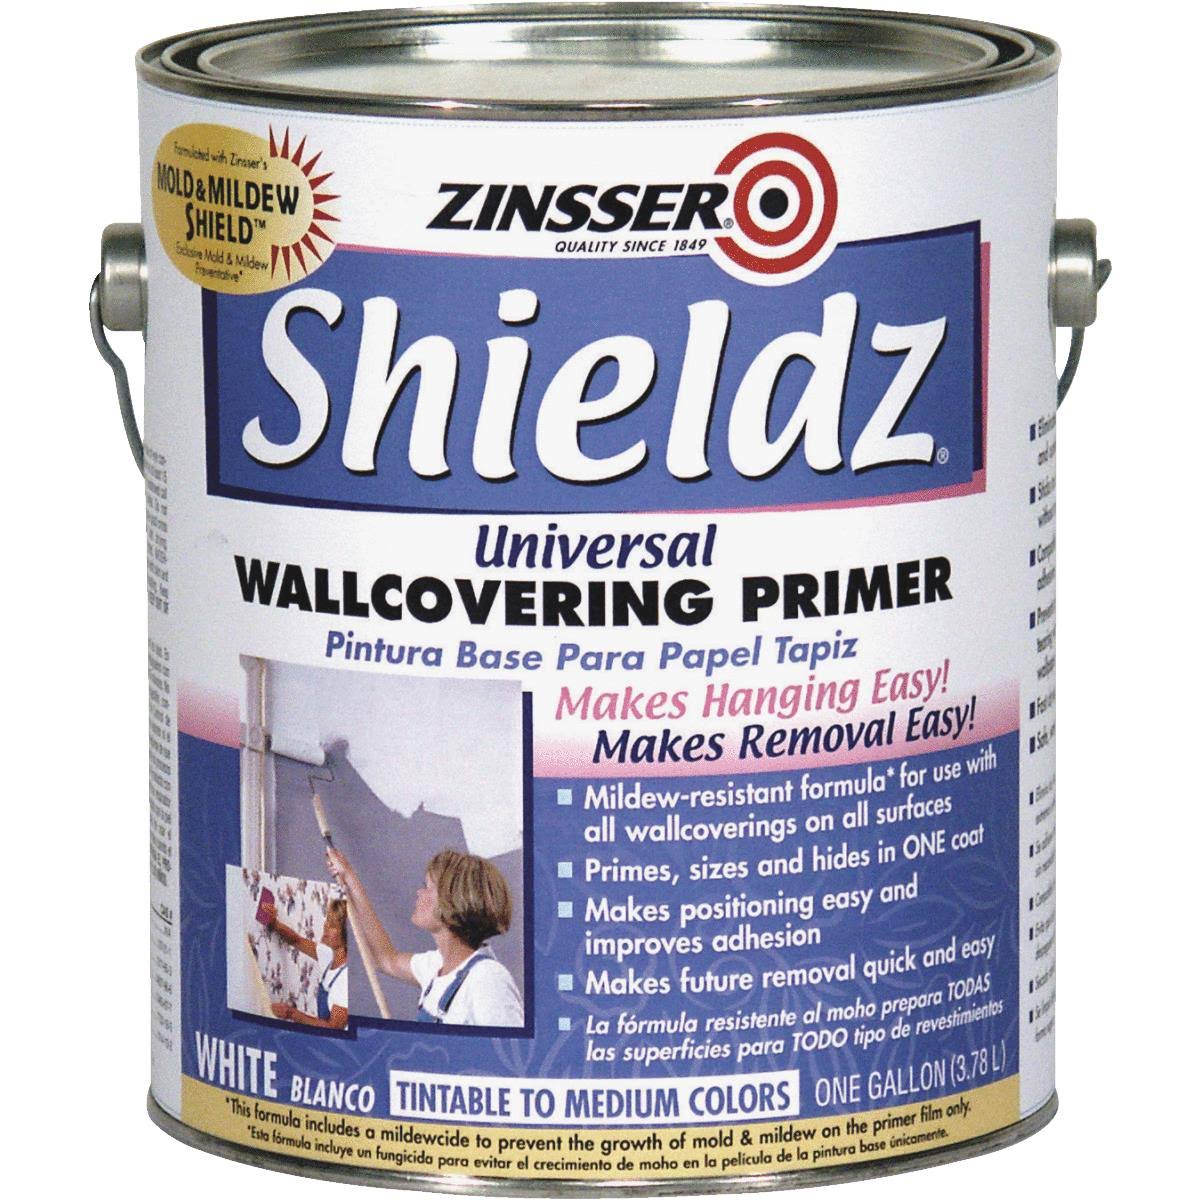 Zinsser Shieldz Universal Wallcovering Primer Sealer - 1 Gallon